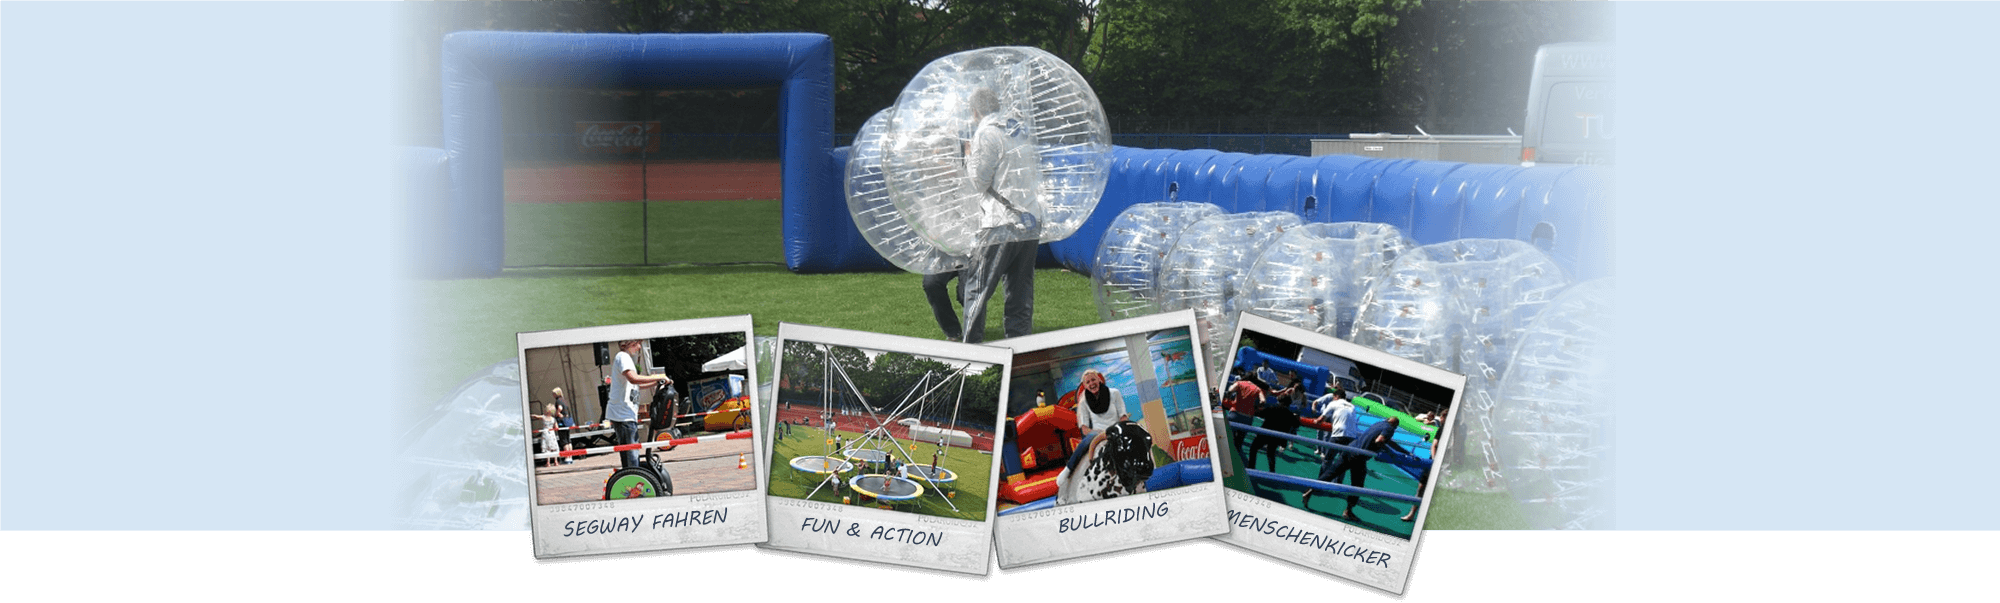 Slide-Bumperball-Event-Verleih